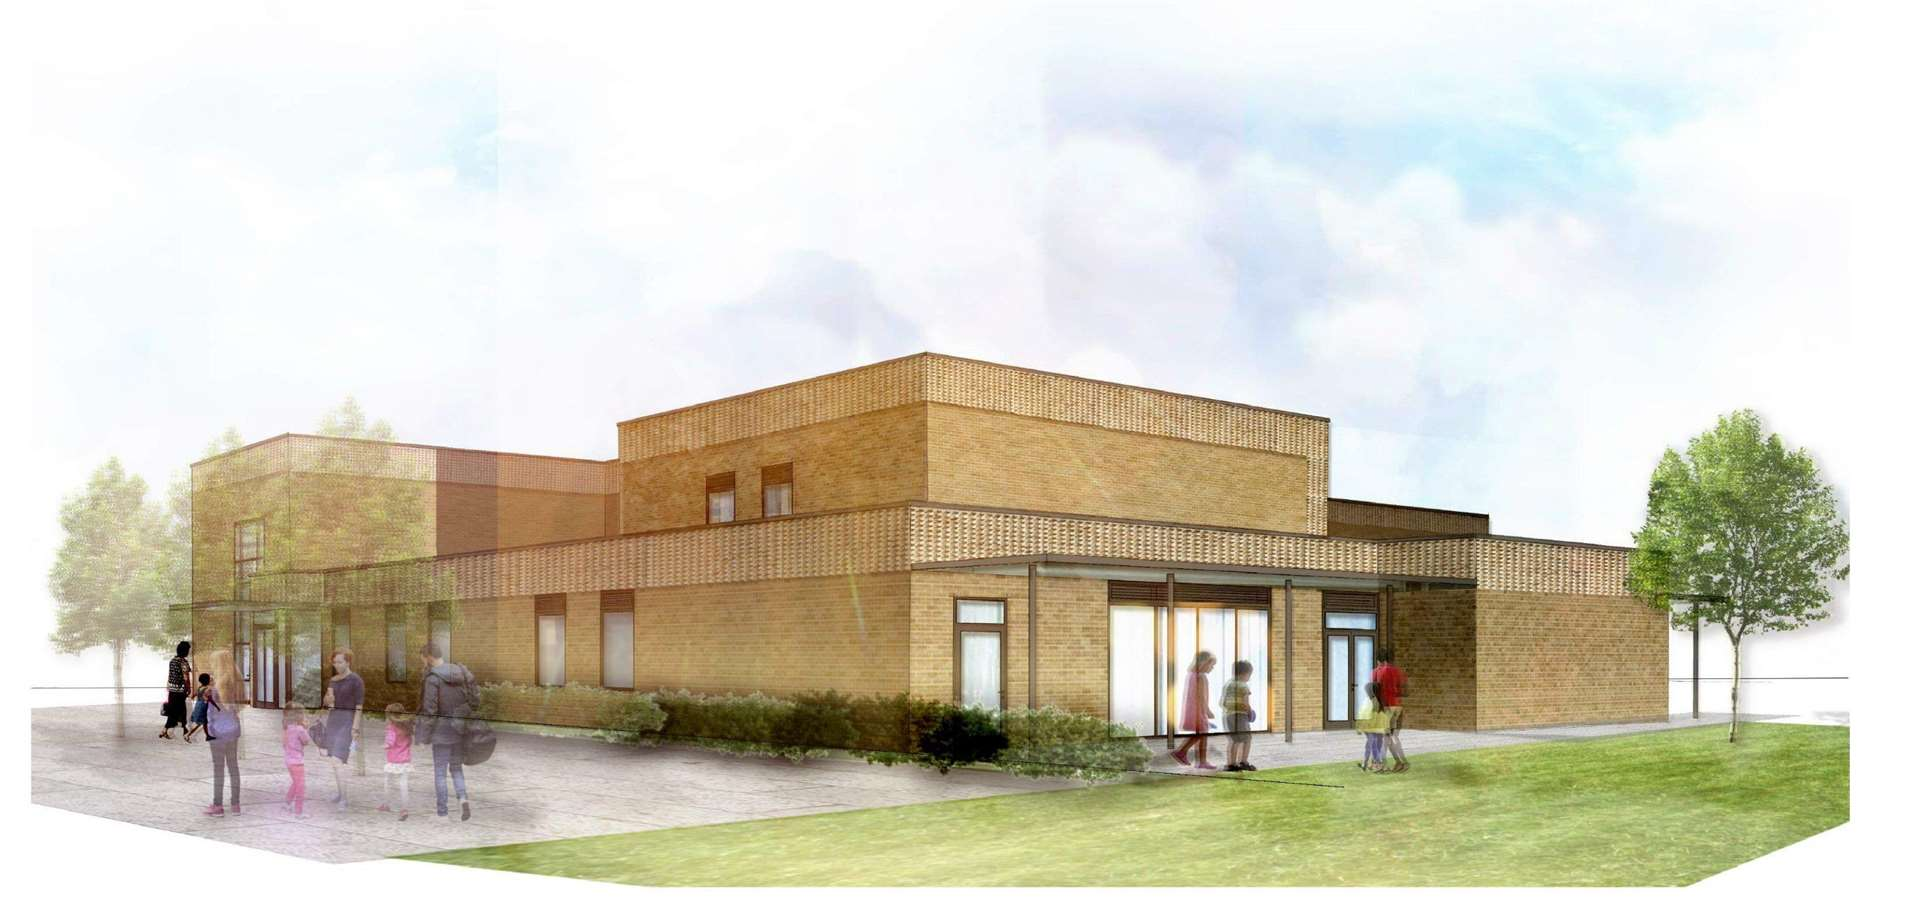 An artist's impression of the new primary school for Lakenheath in Station Road